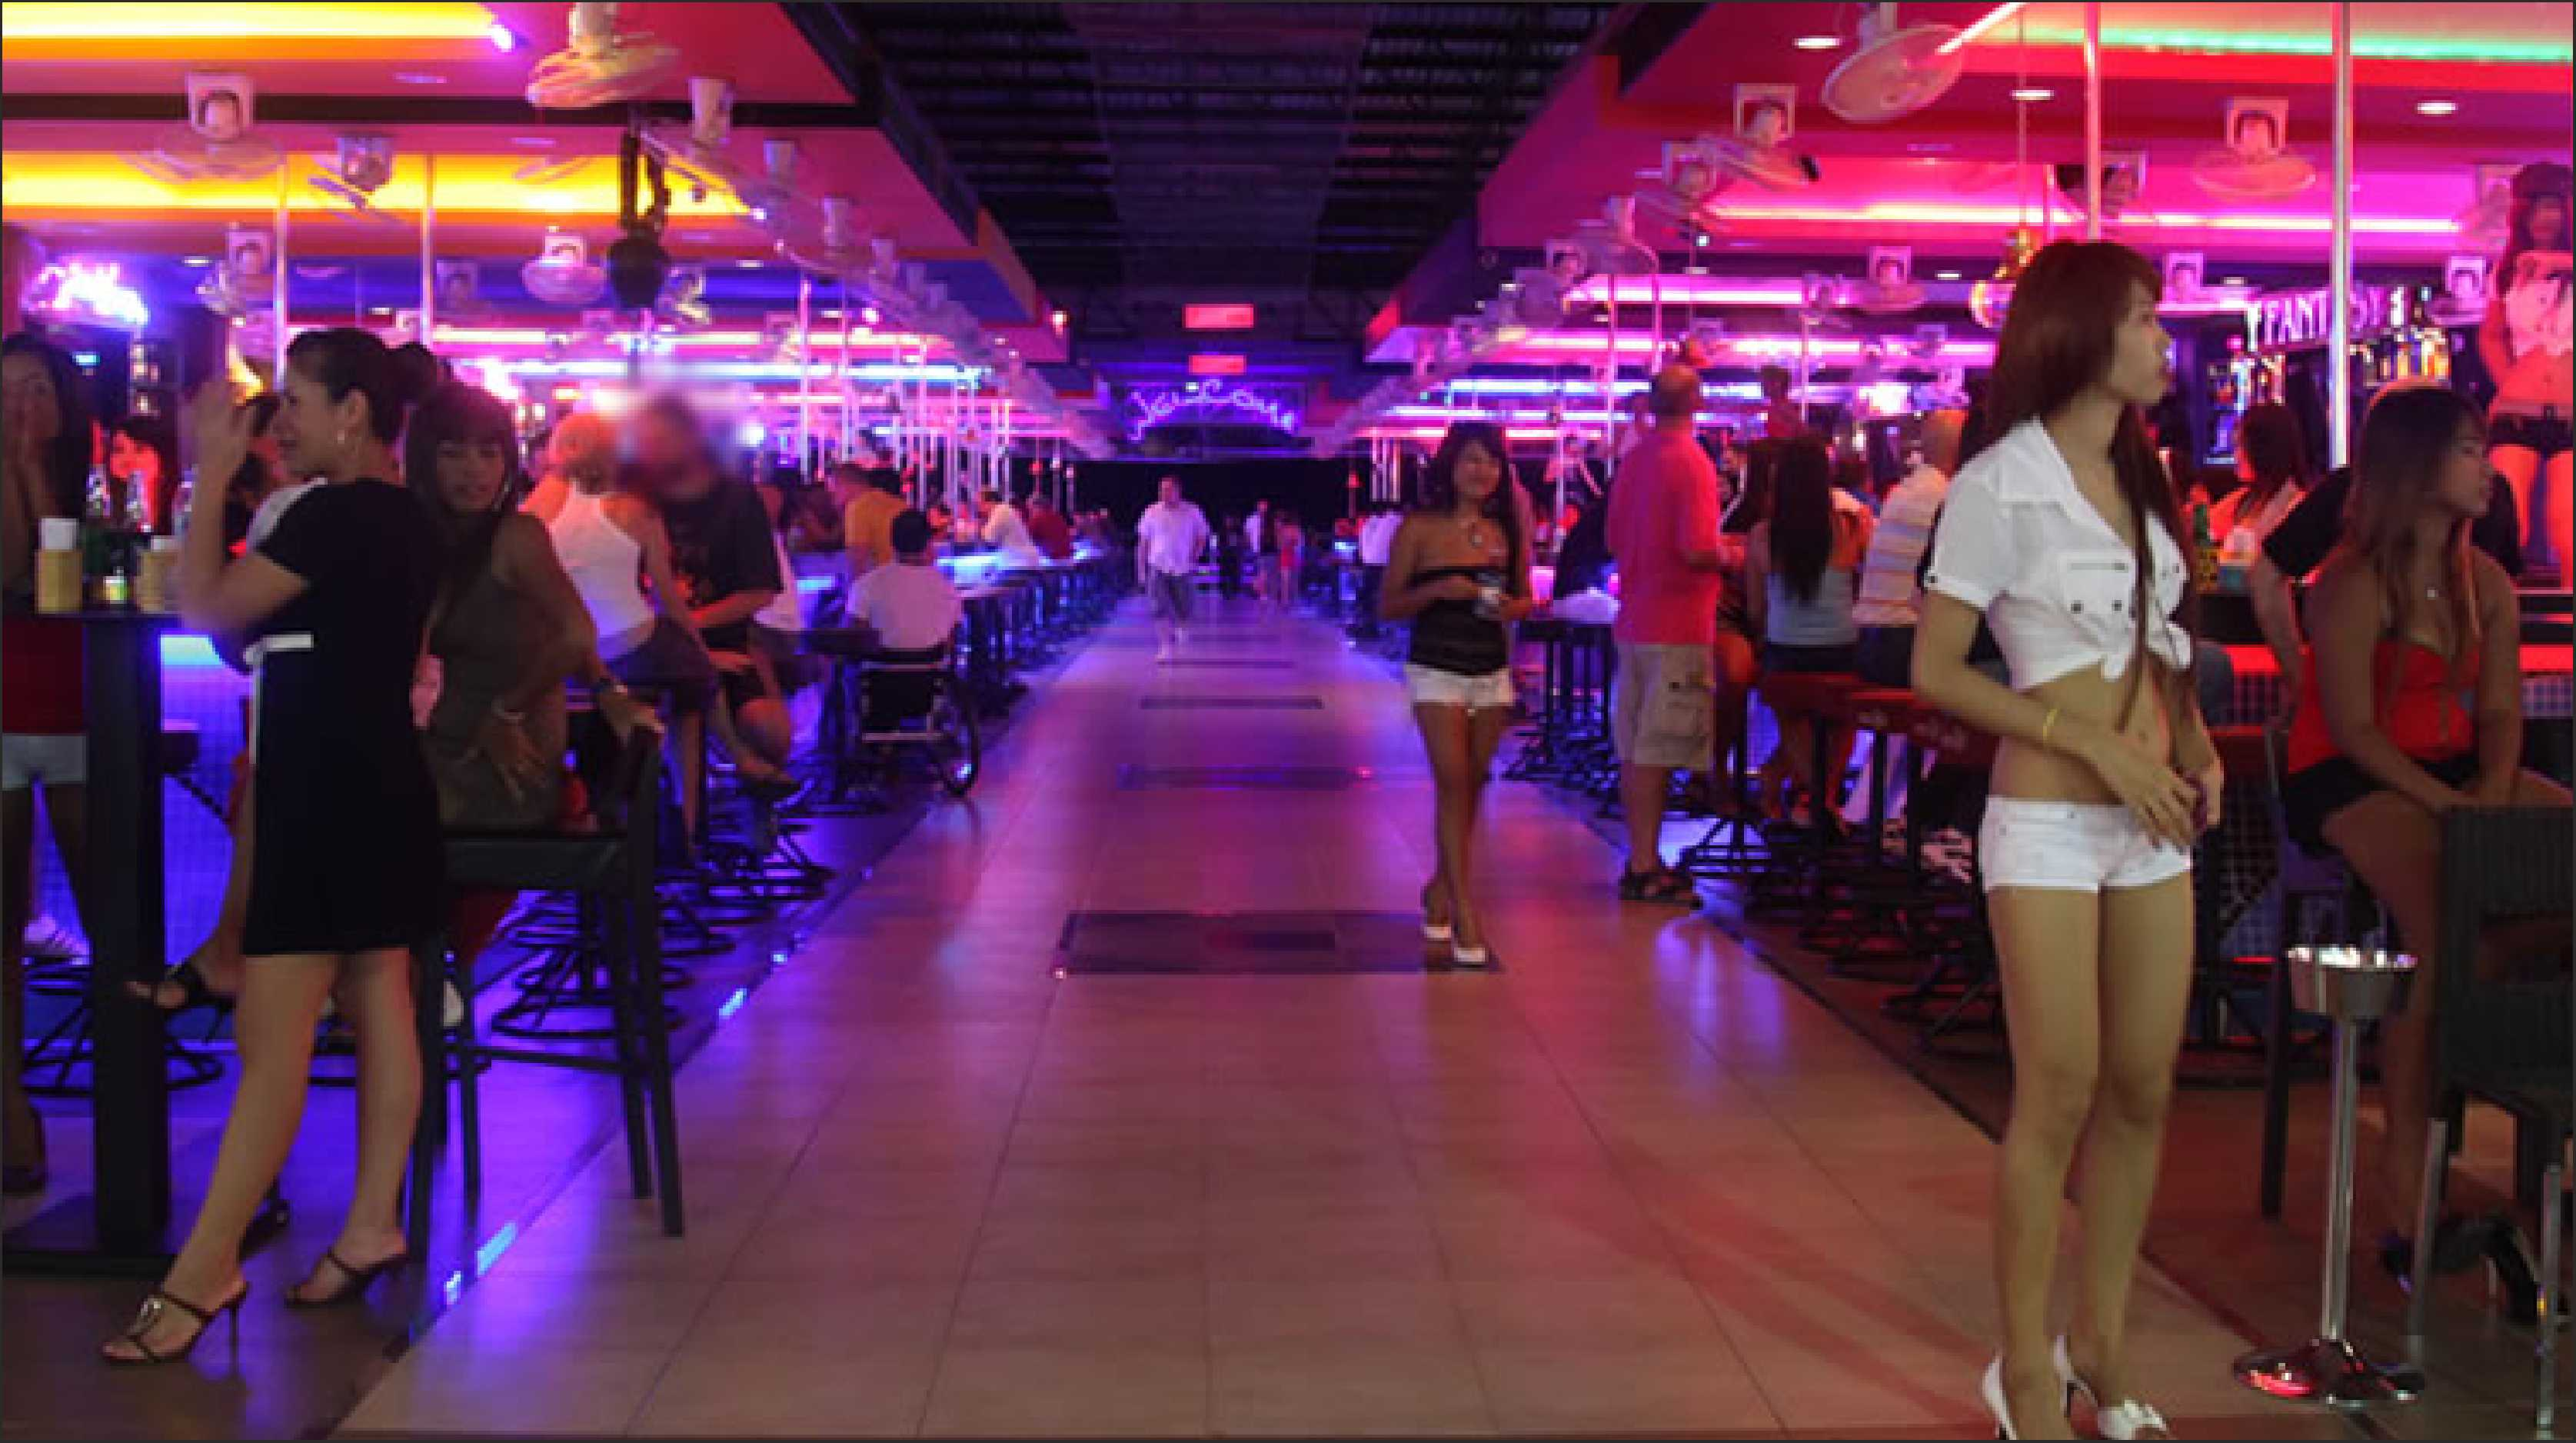 Pattaya City Nightlife Fun